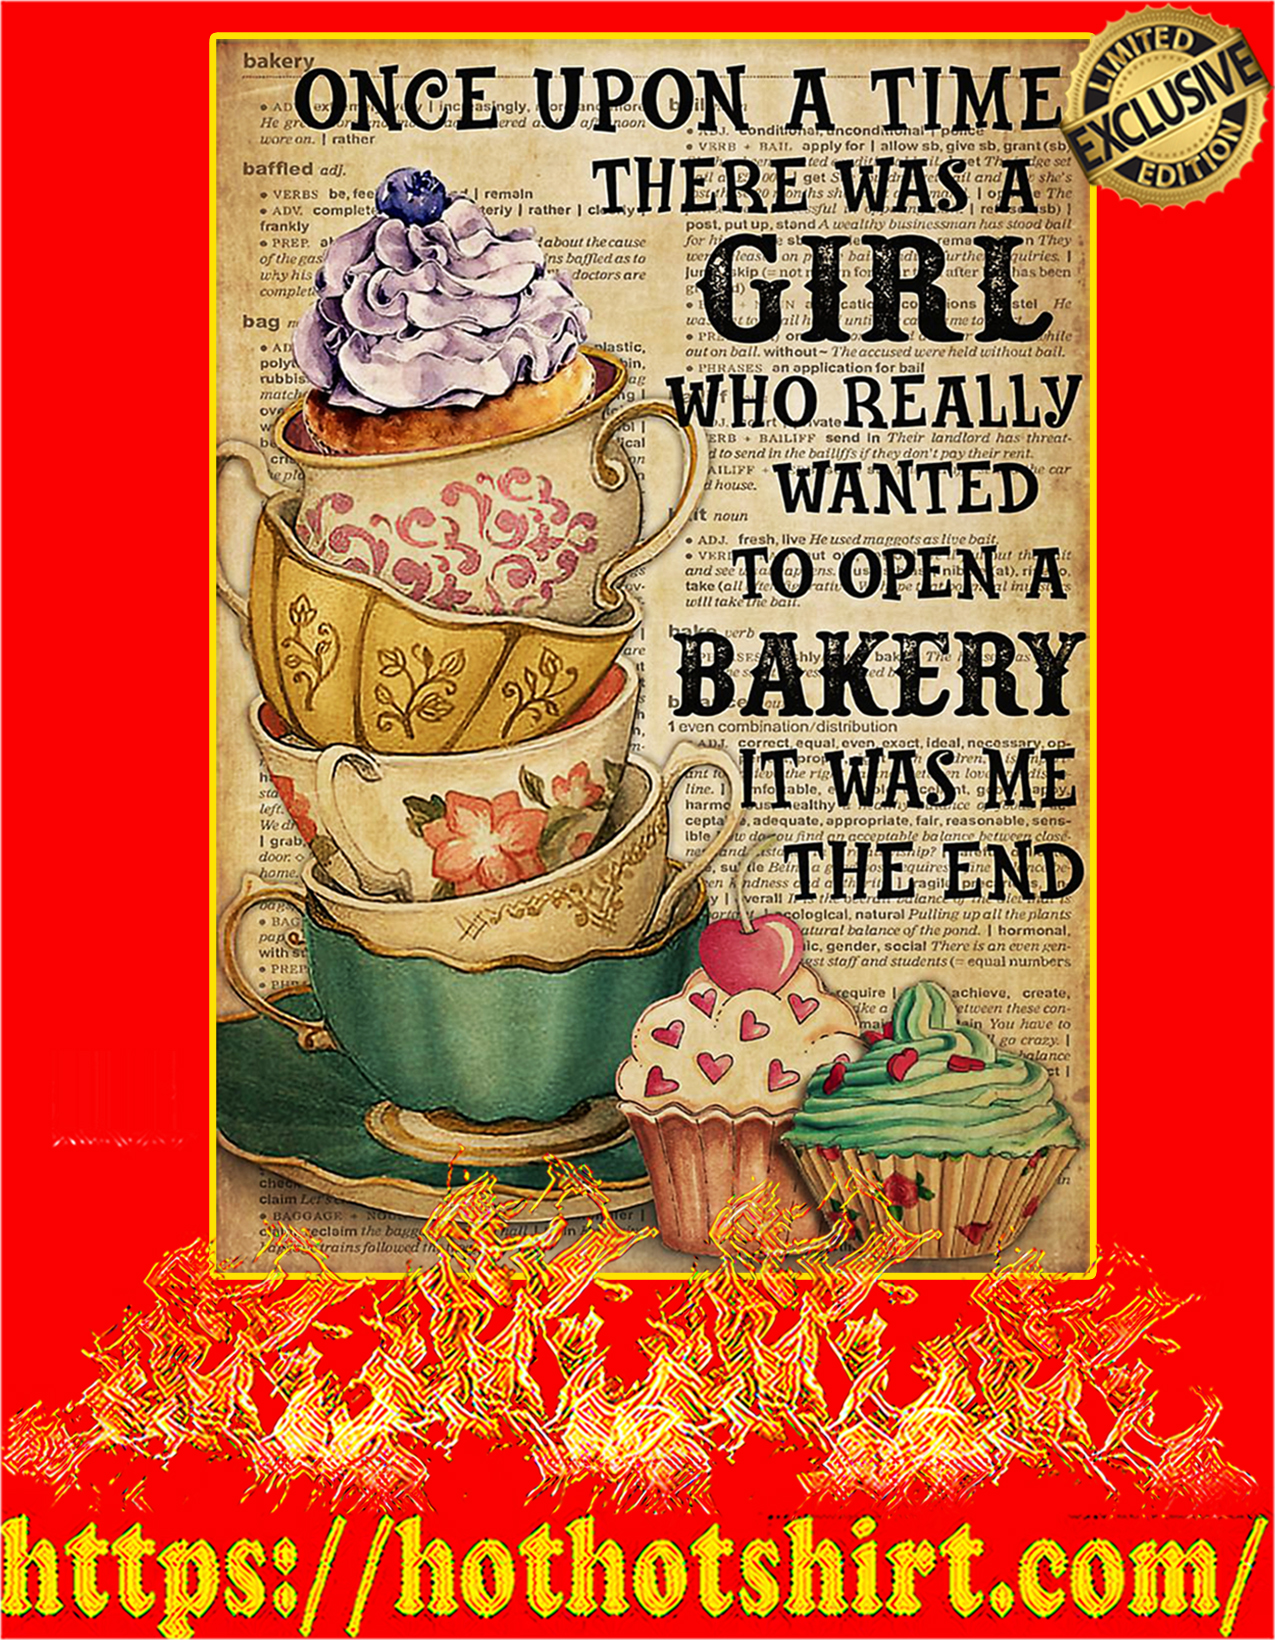 There was a girl who really wanted to open a bakery poster - A2